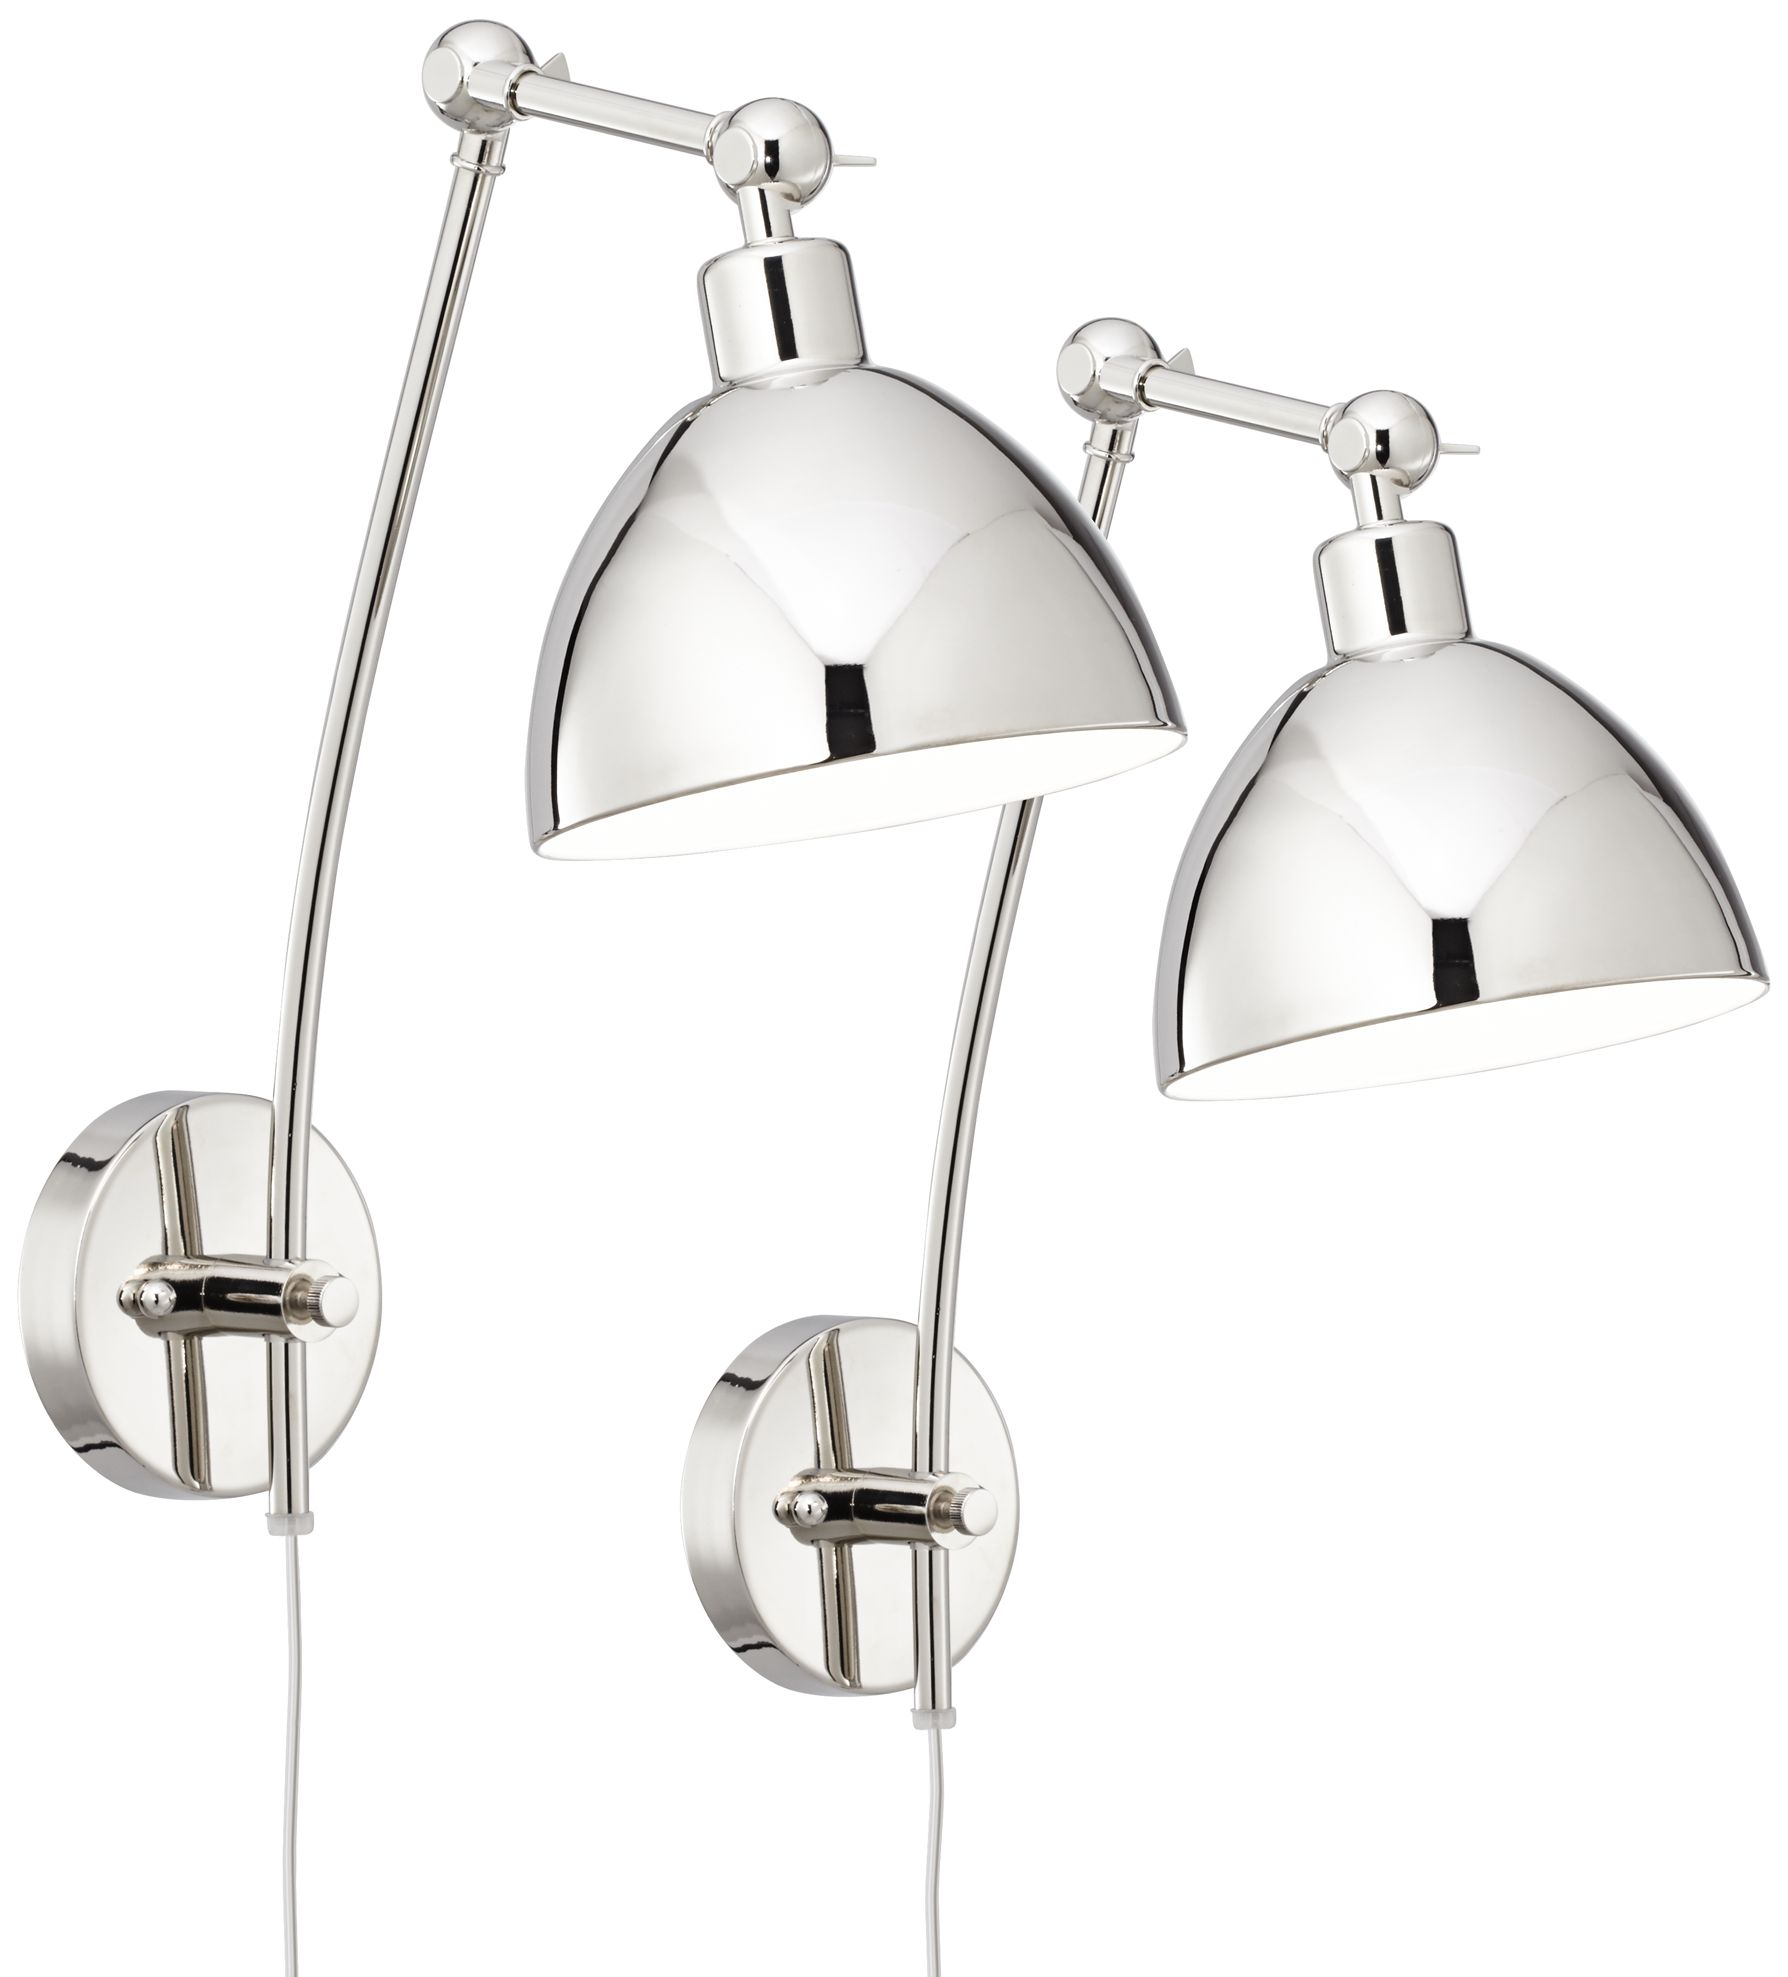 delon chrome adjustable plugin wall lamp set of 2